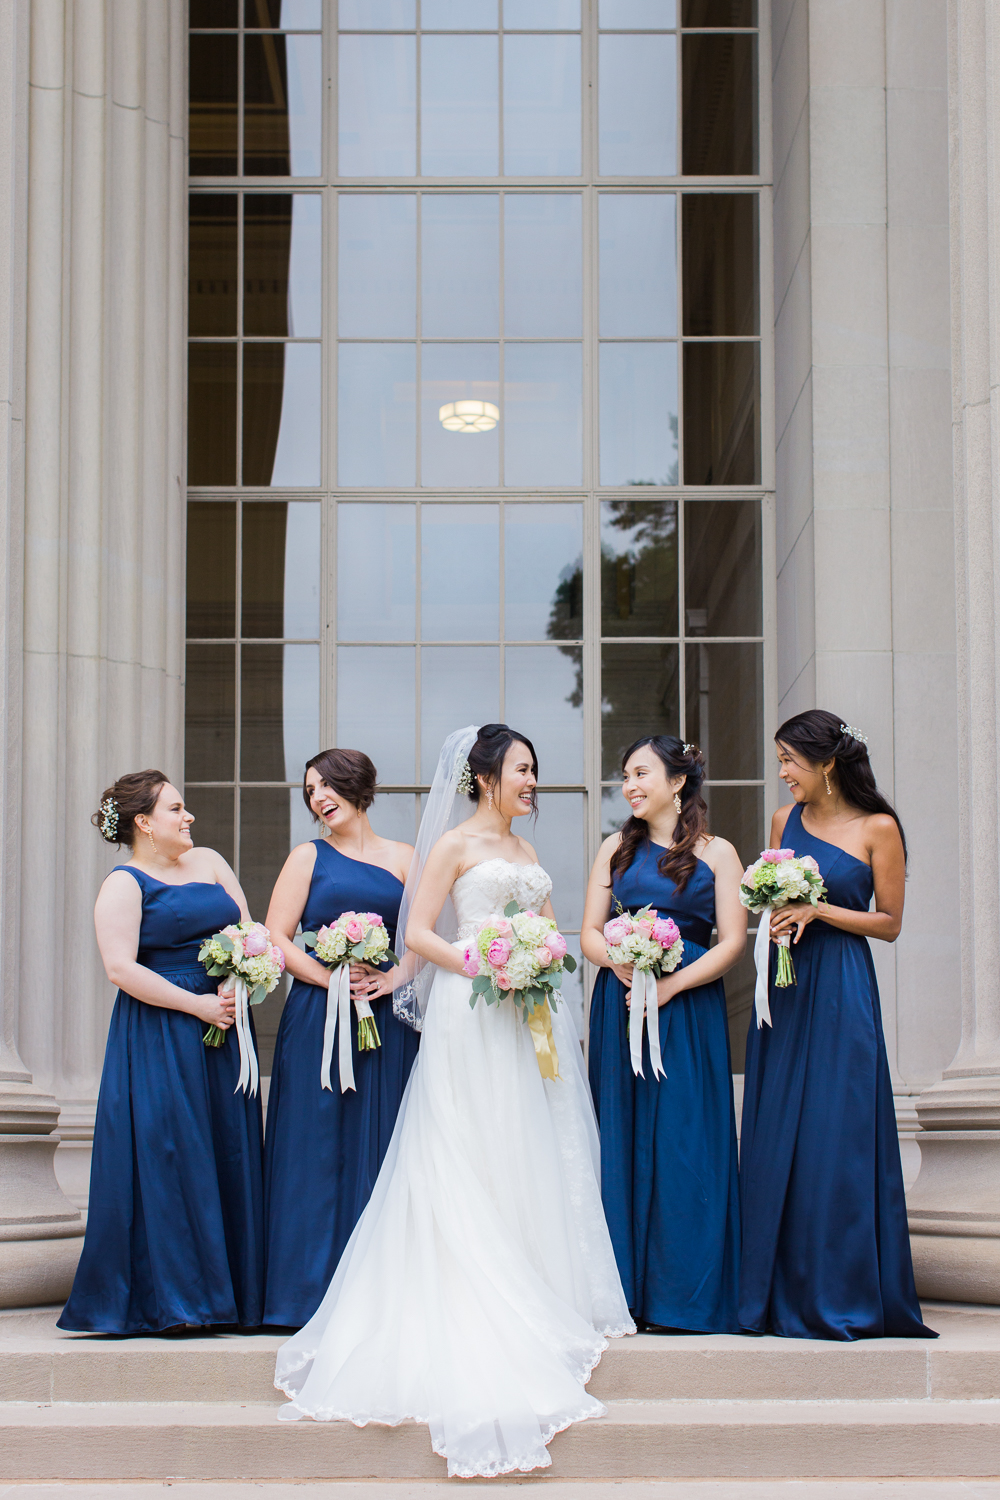 hyatt-regency-cambridge-wedding-photography-64